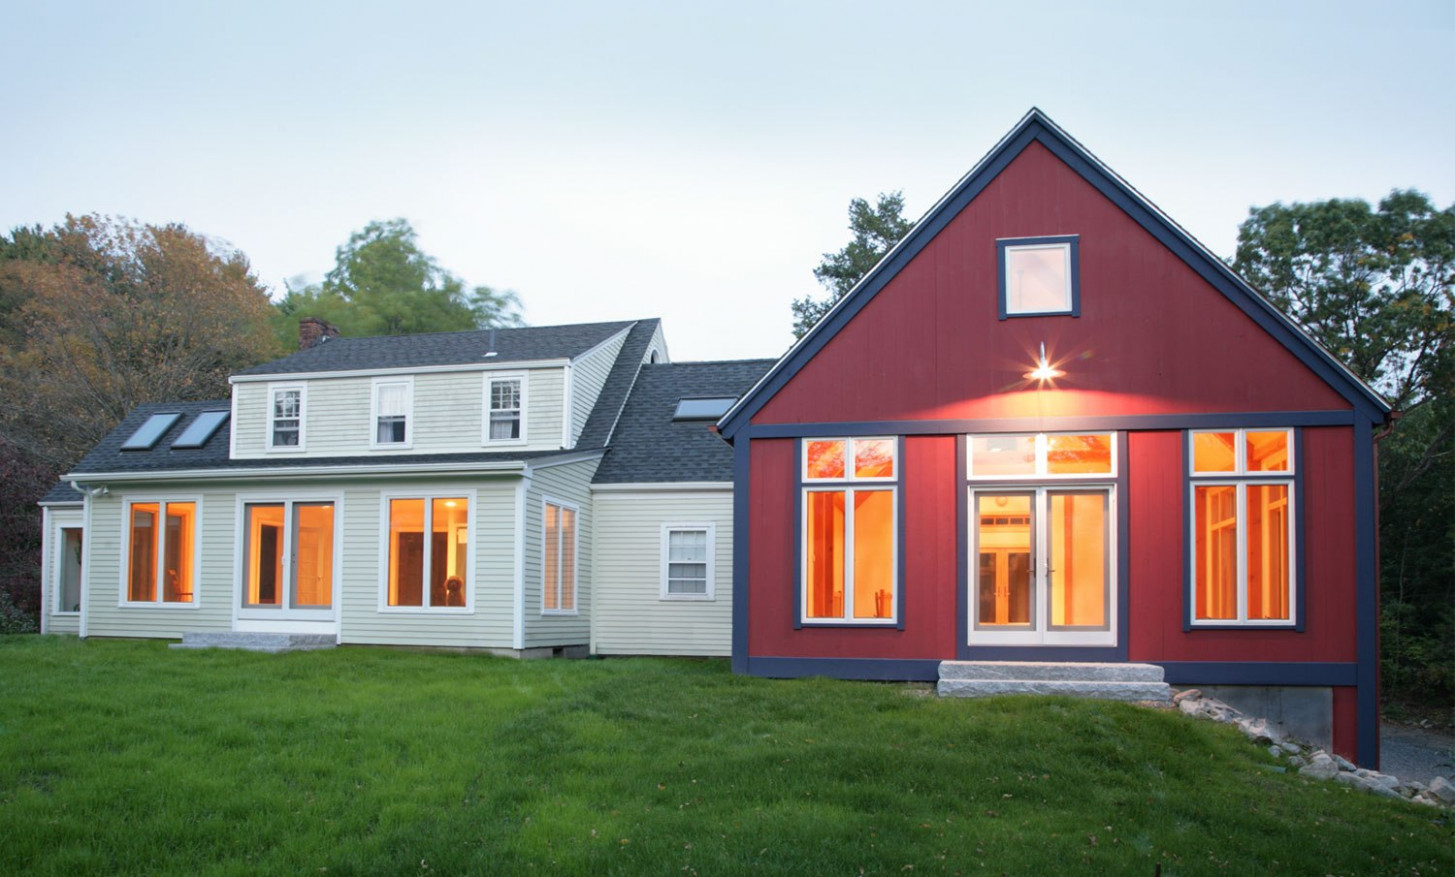 Top 12 Home Addition Ideas, Plus Costs And ROI Details ..